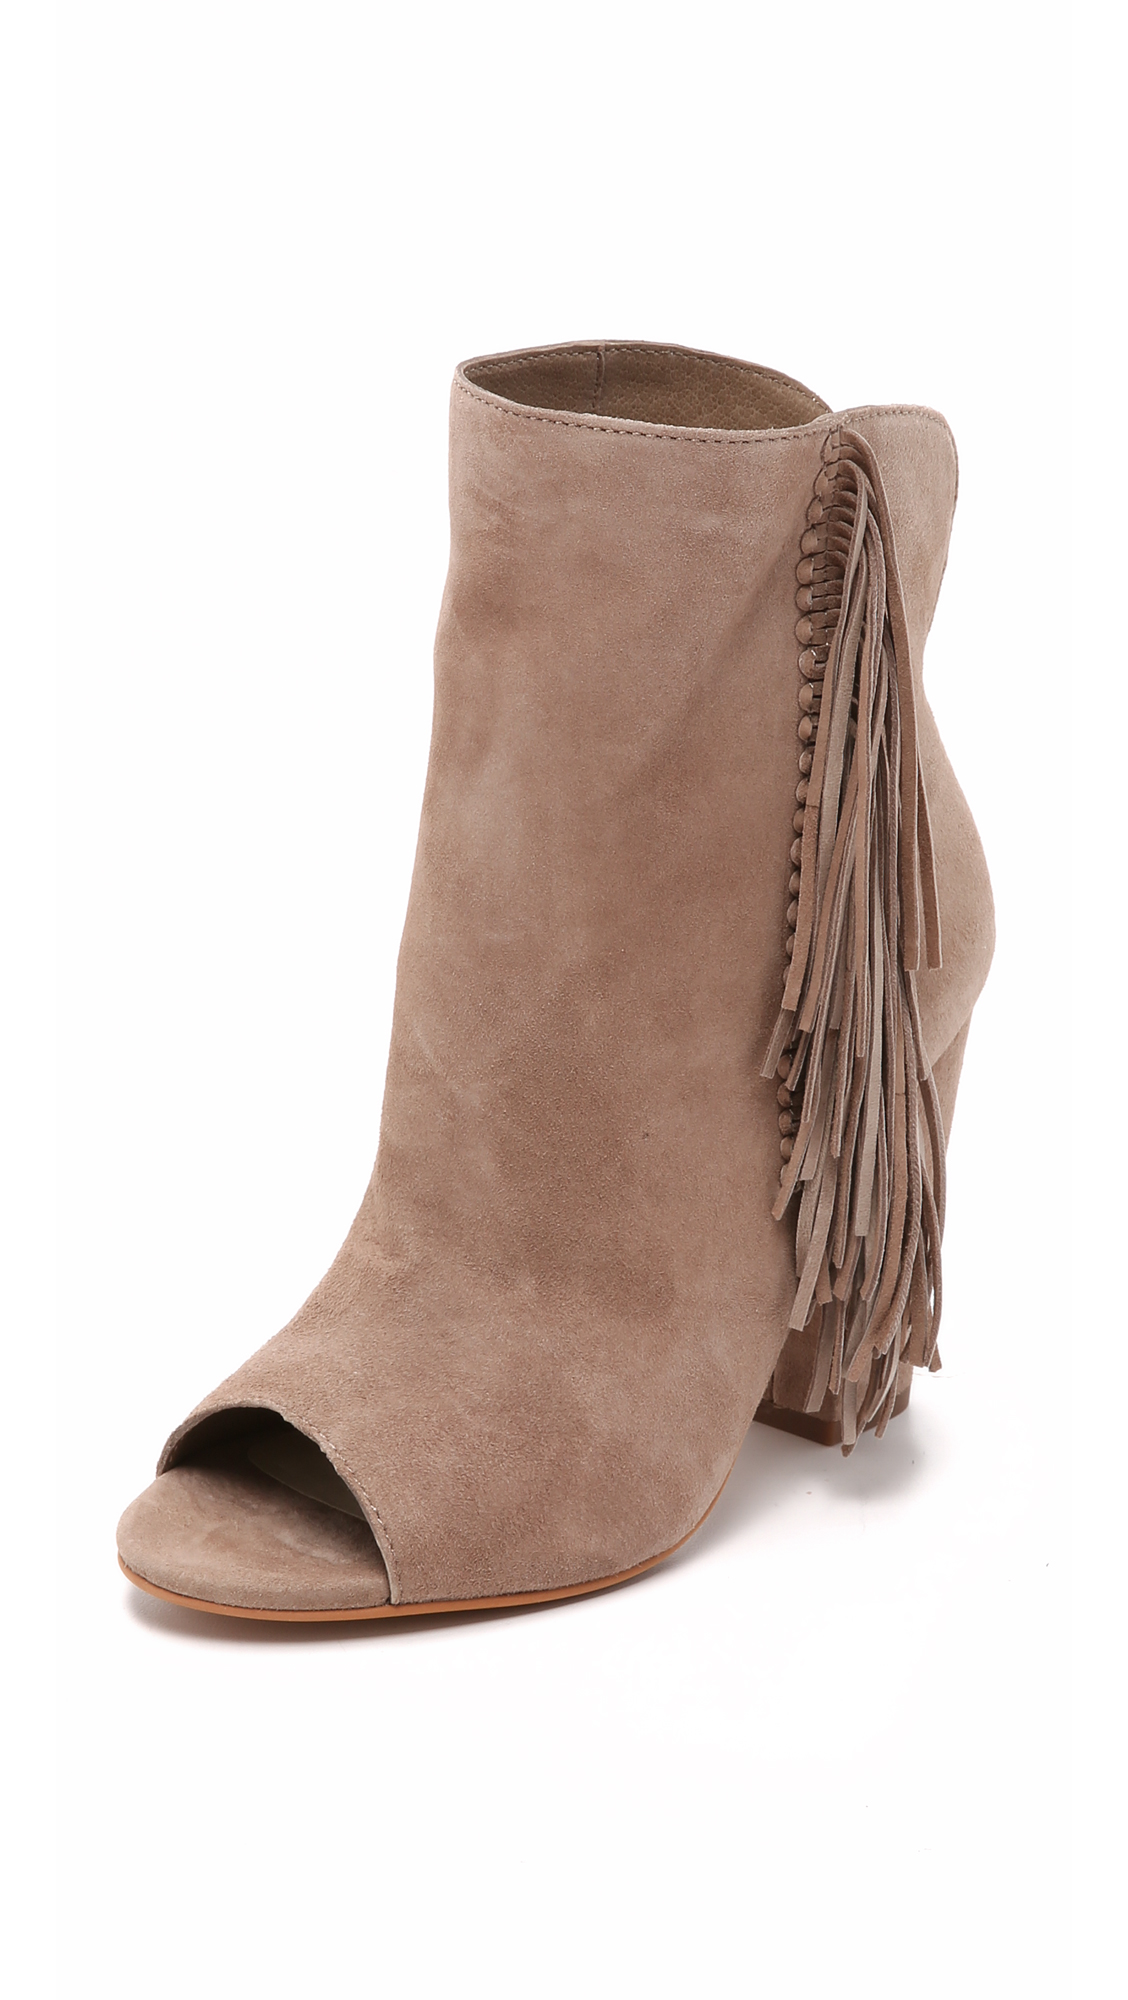 A good open toe bootie is necessary all year-round! $126